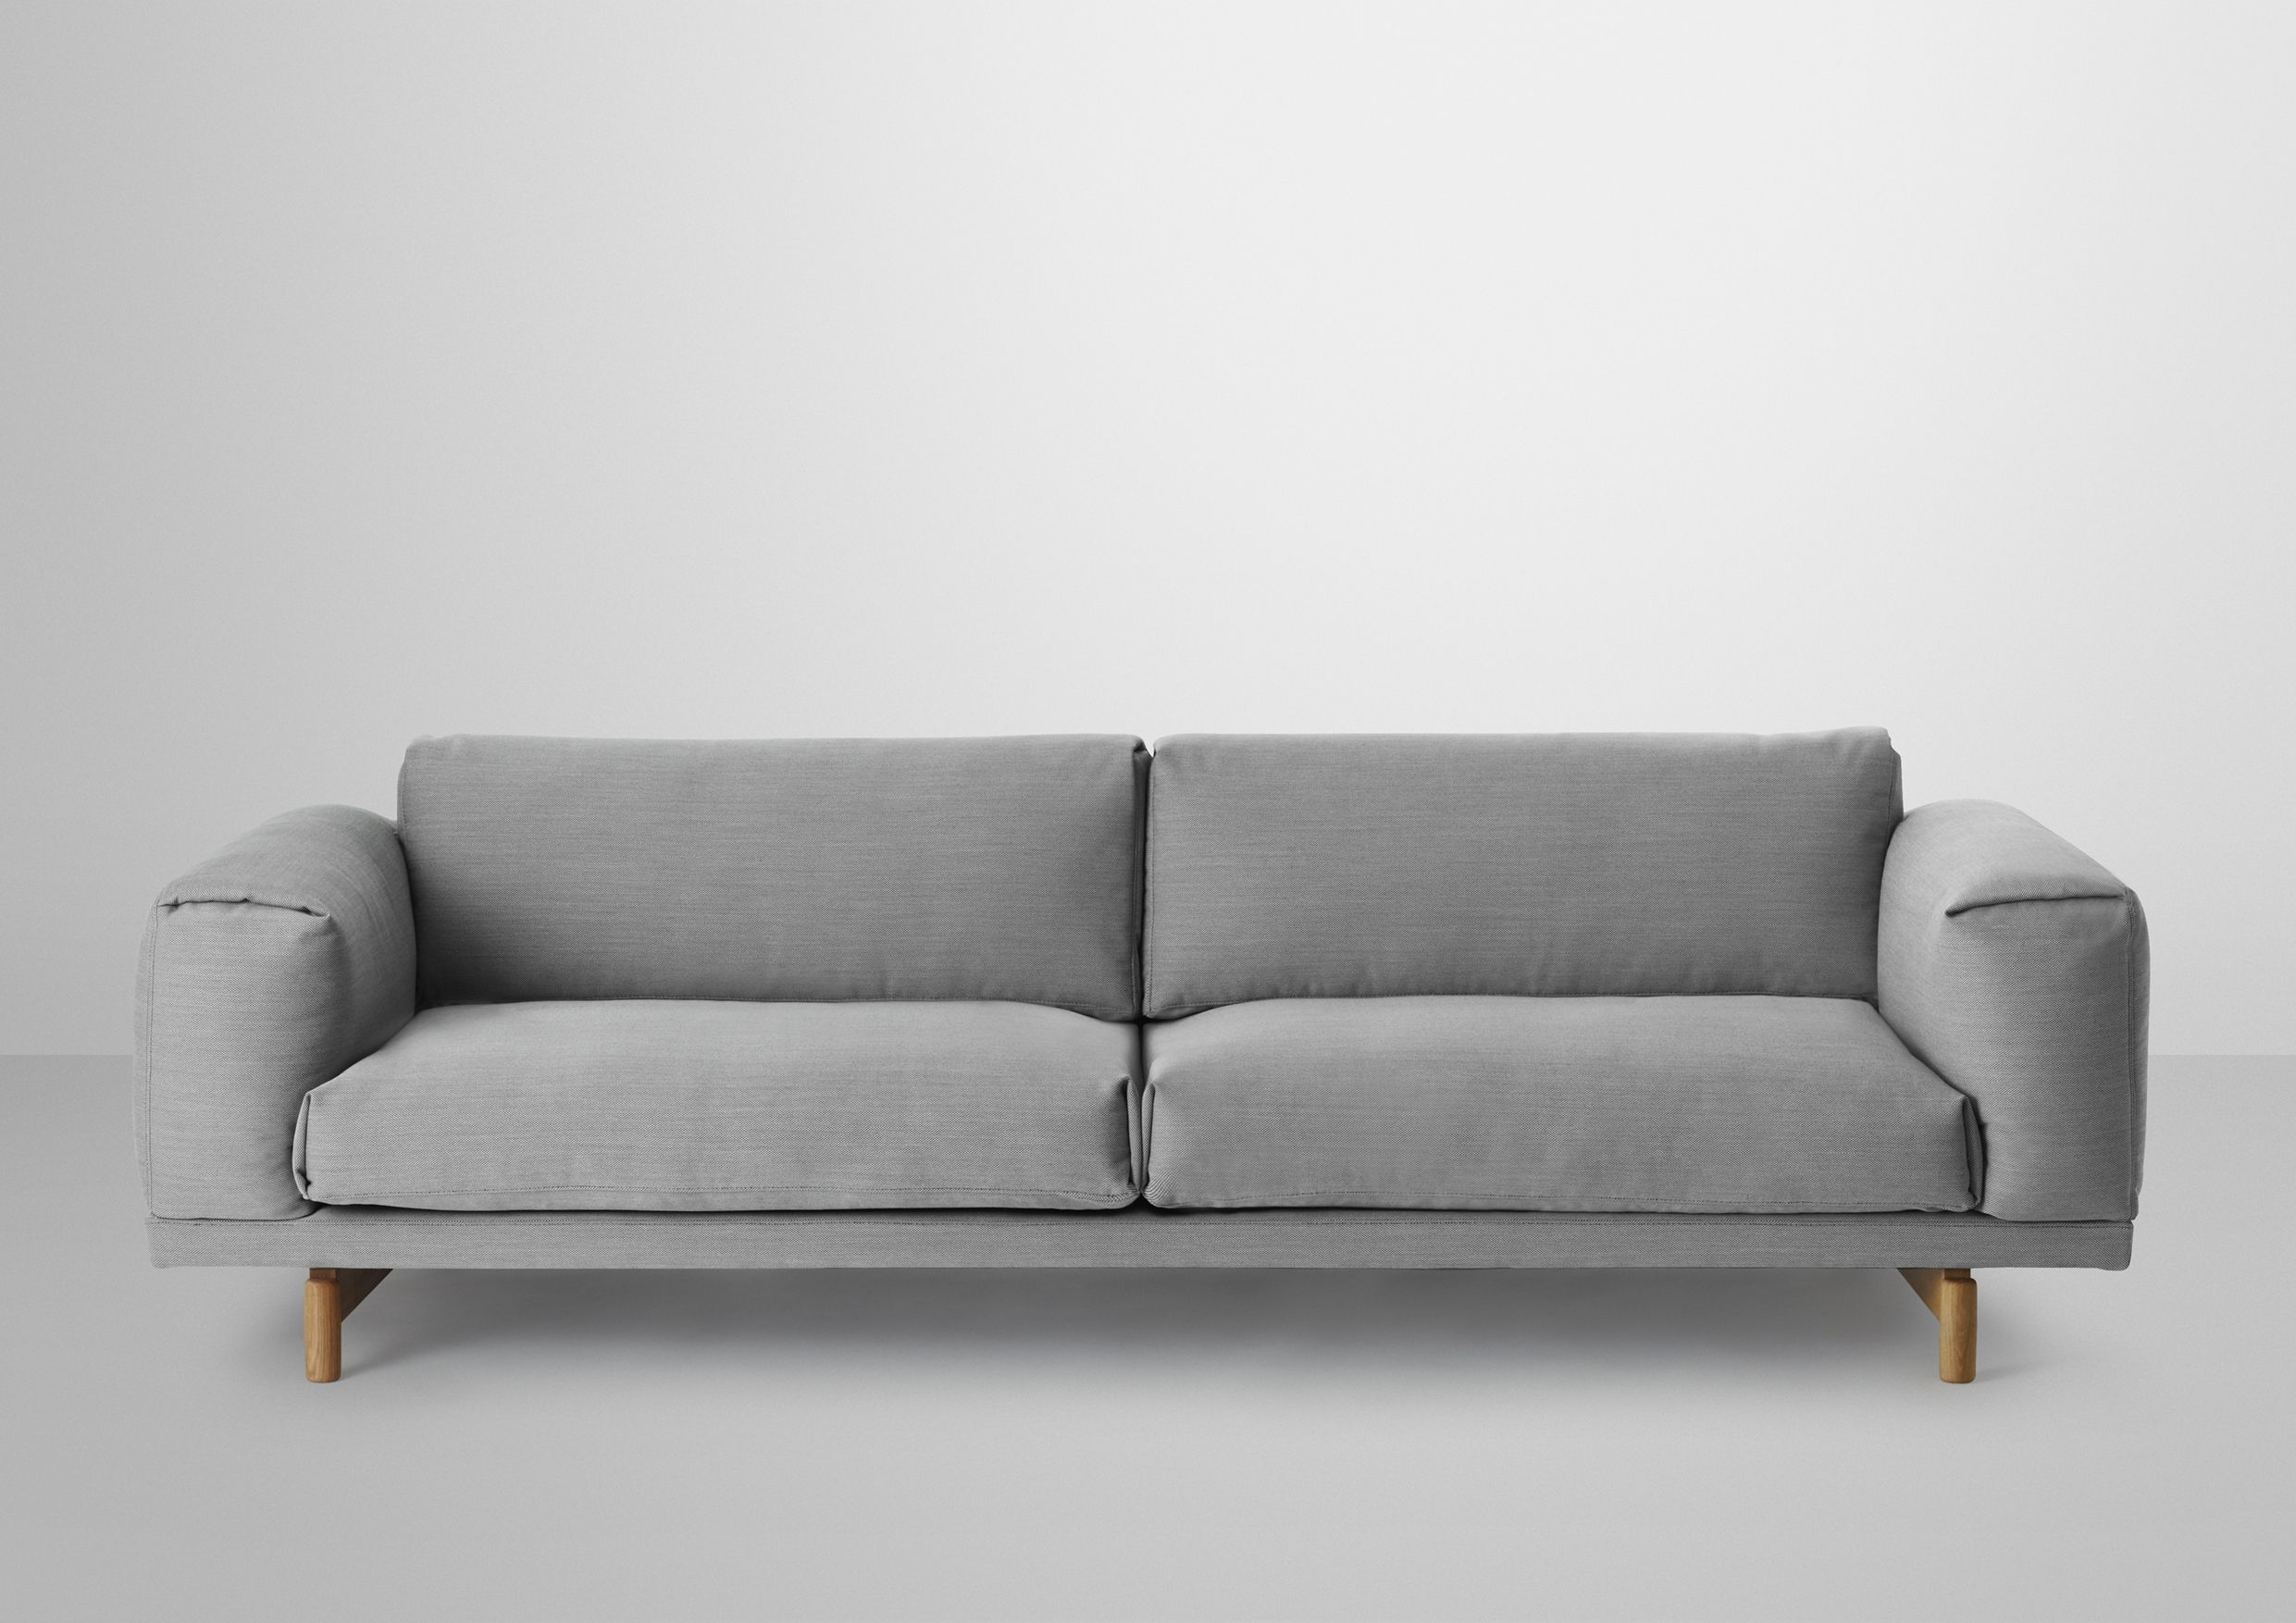 Großartig Montis Axel Is The Ideal Sofa For Any Living Room | Montis | Pinterest |  Living Rooms, Room And Lofts